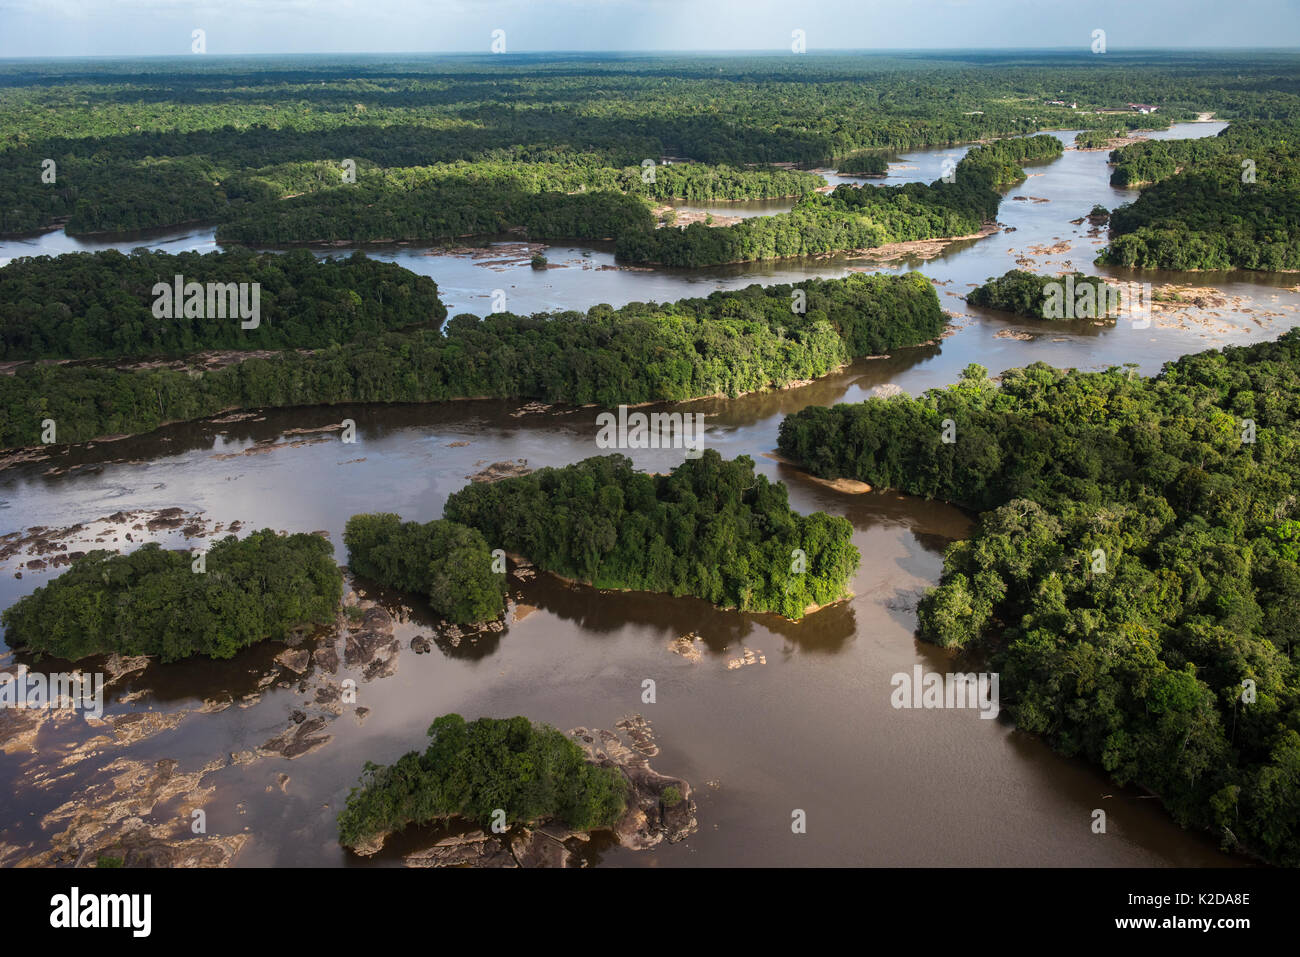 Aerial view of Essequibo river, Guyana, South America Stock Photo